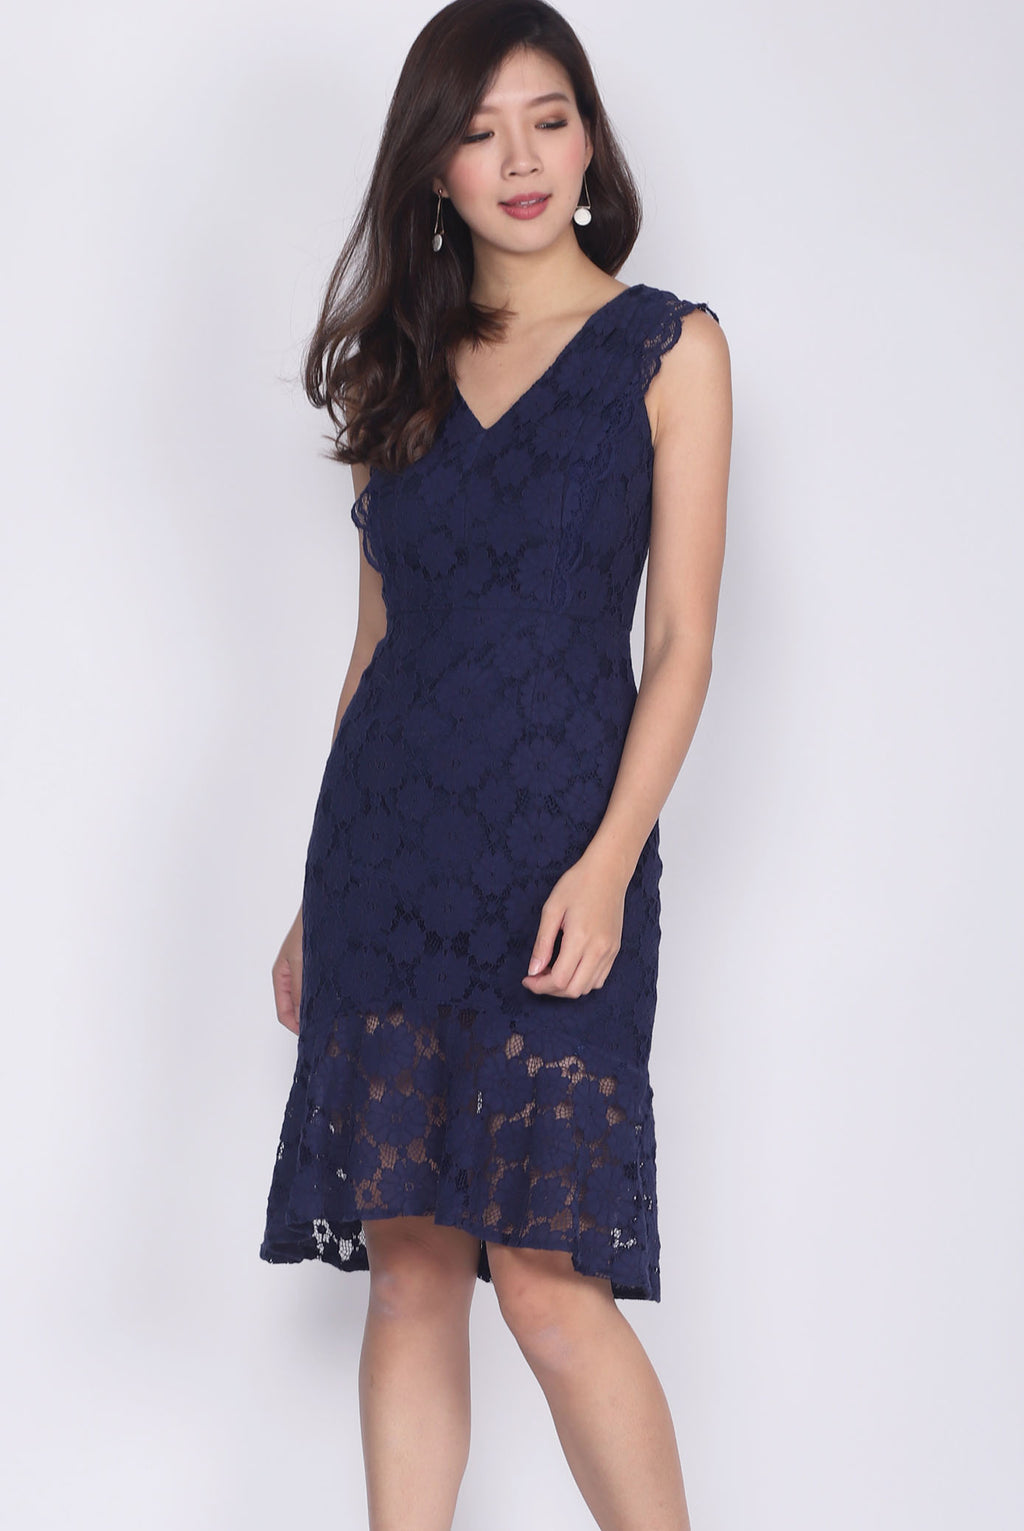 Bevin Fishtail Lace Dress In Navy Blue